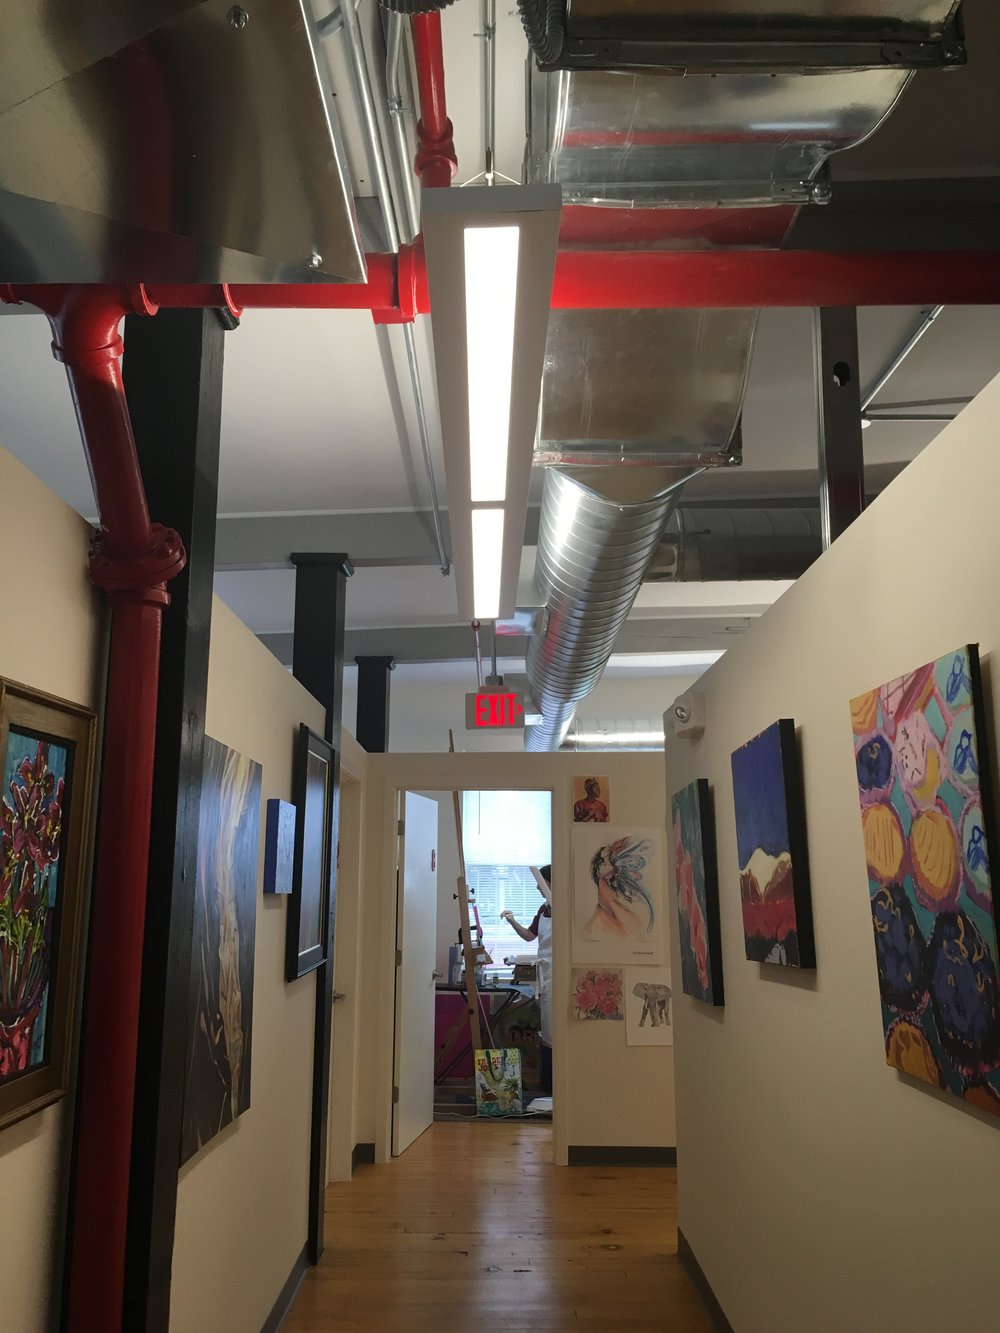 Howard Street Studios provides studios and galleries to local artists who live and work in downtown.